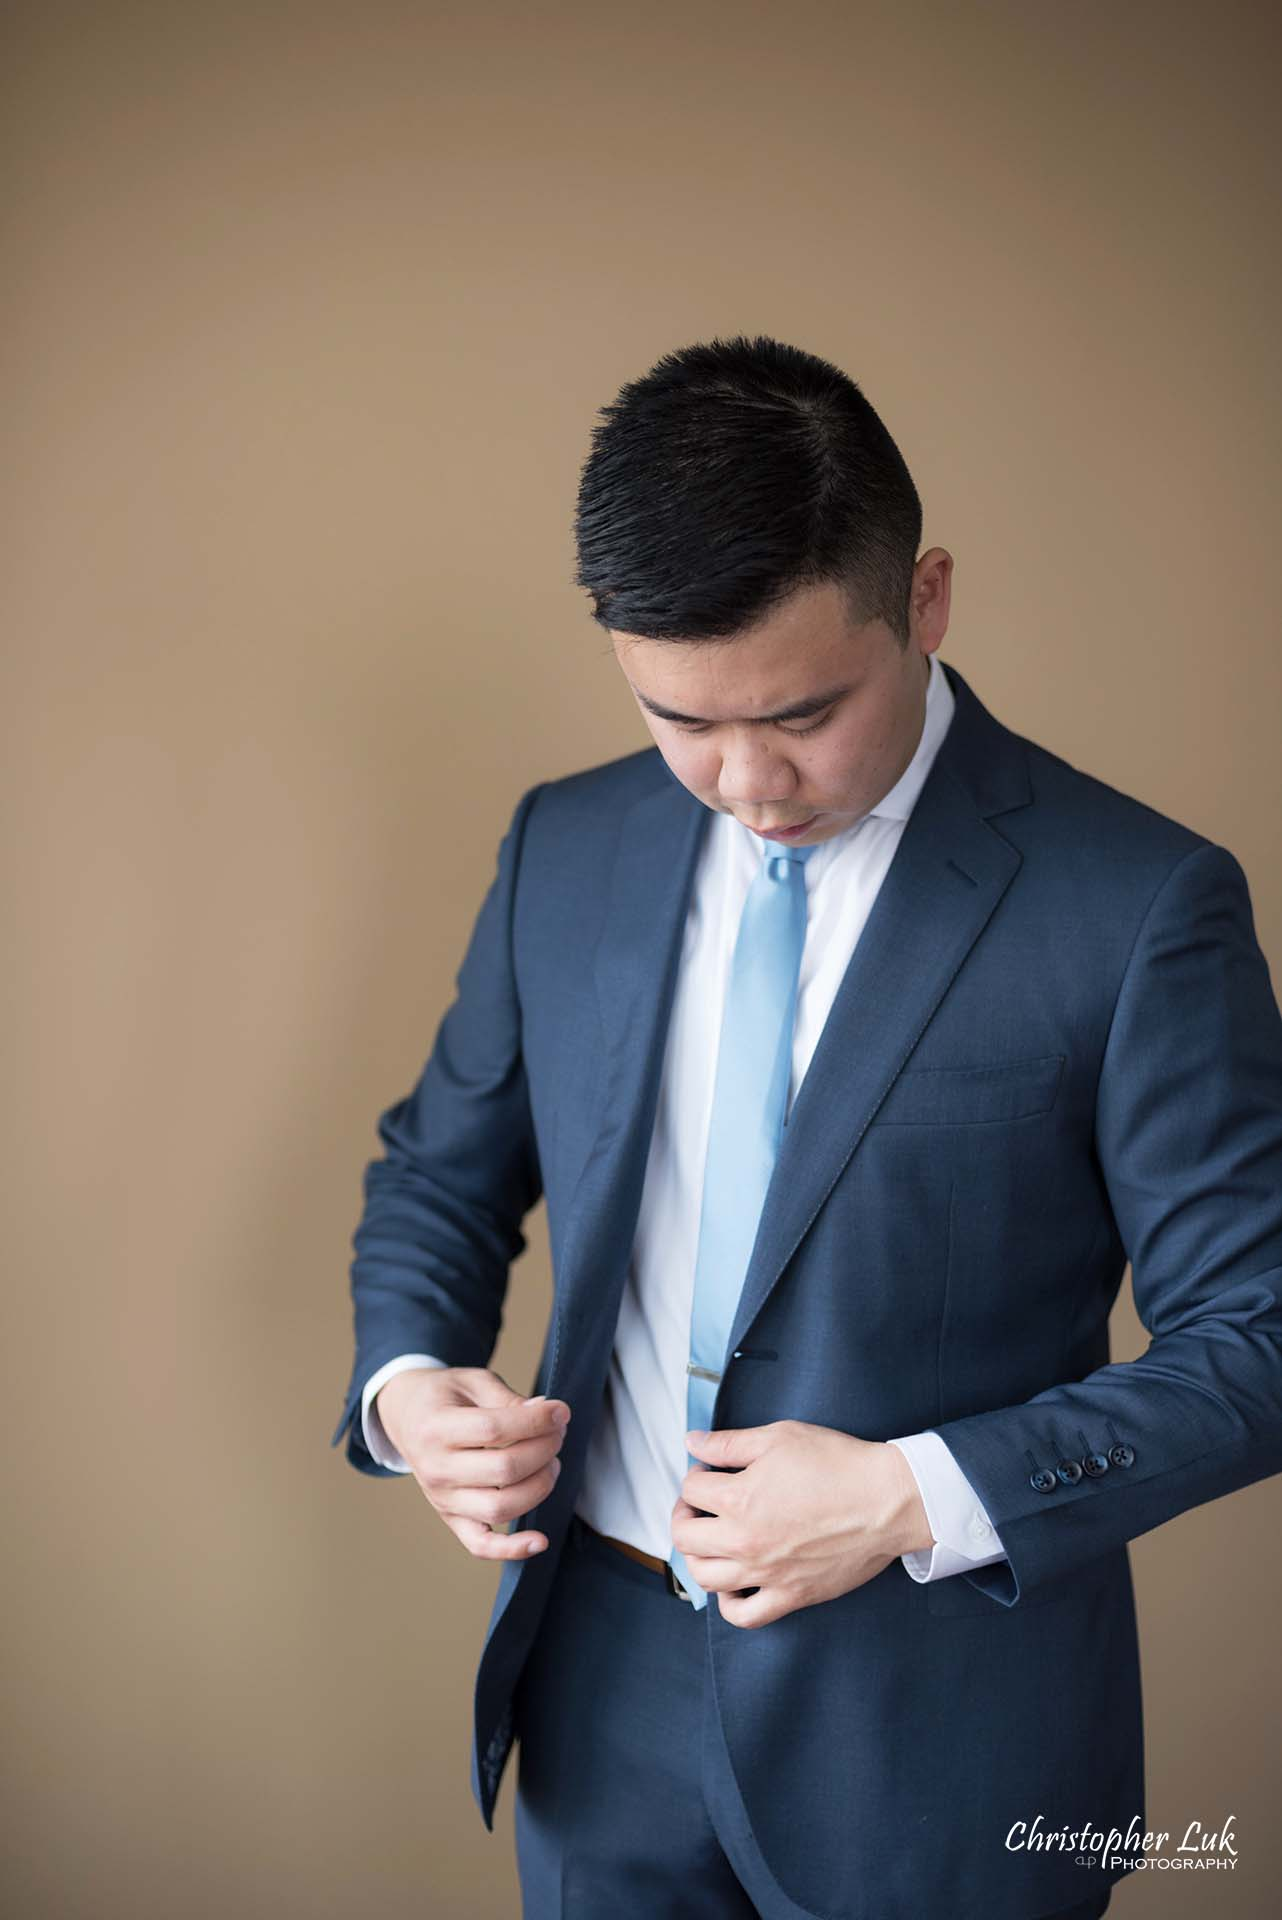 Christopher Luk Toronto Wedding Photographer Groom Getting Ready Preparations Natural Candid Photojournalistic Wingmen Suits Custom Made to Measure Navy Blue Suit Putting On Portrait